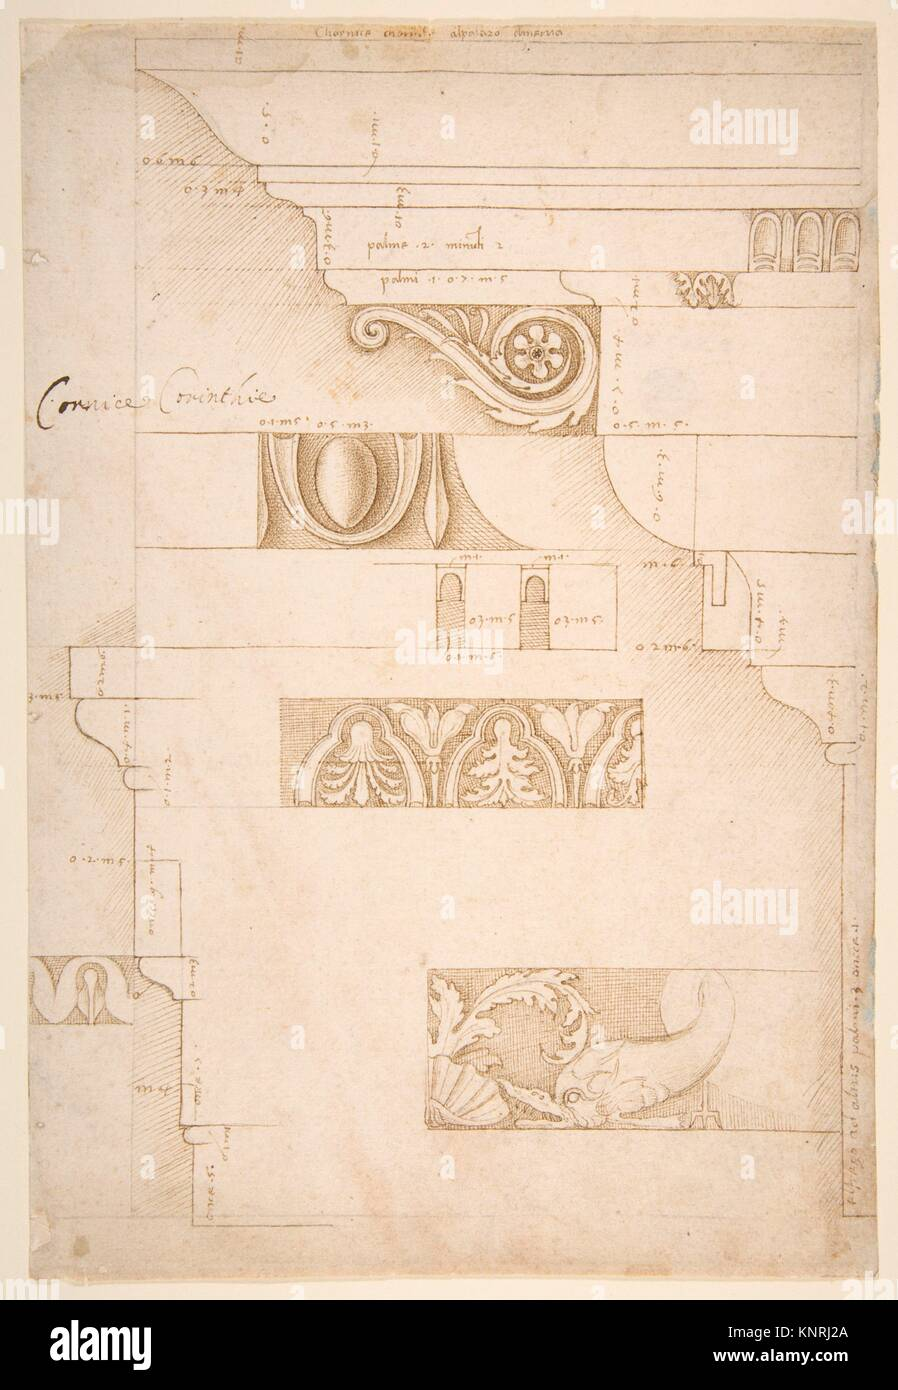 Architectural Study: The Measured Profiles of the Cornice and Entablature of the Colonnacce from the Forum Transitorium - Stock Image